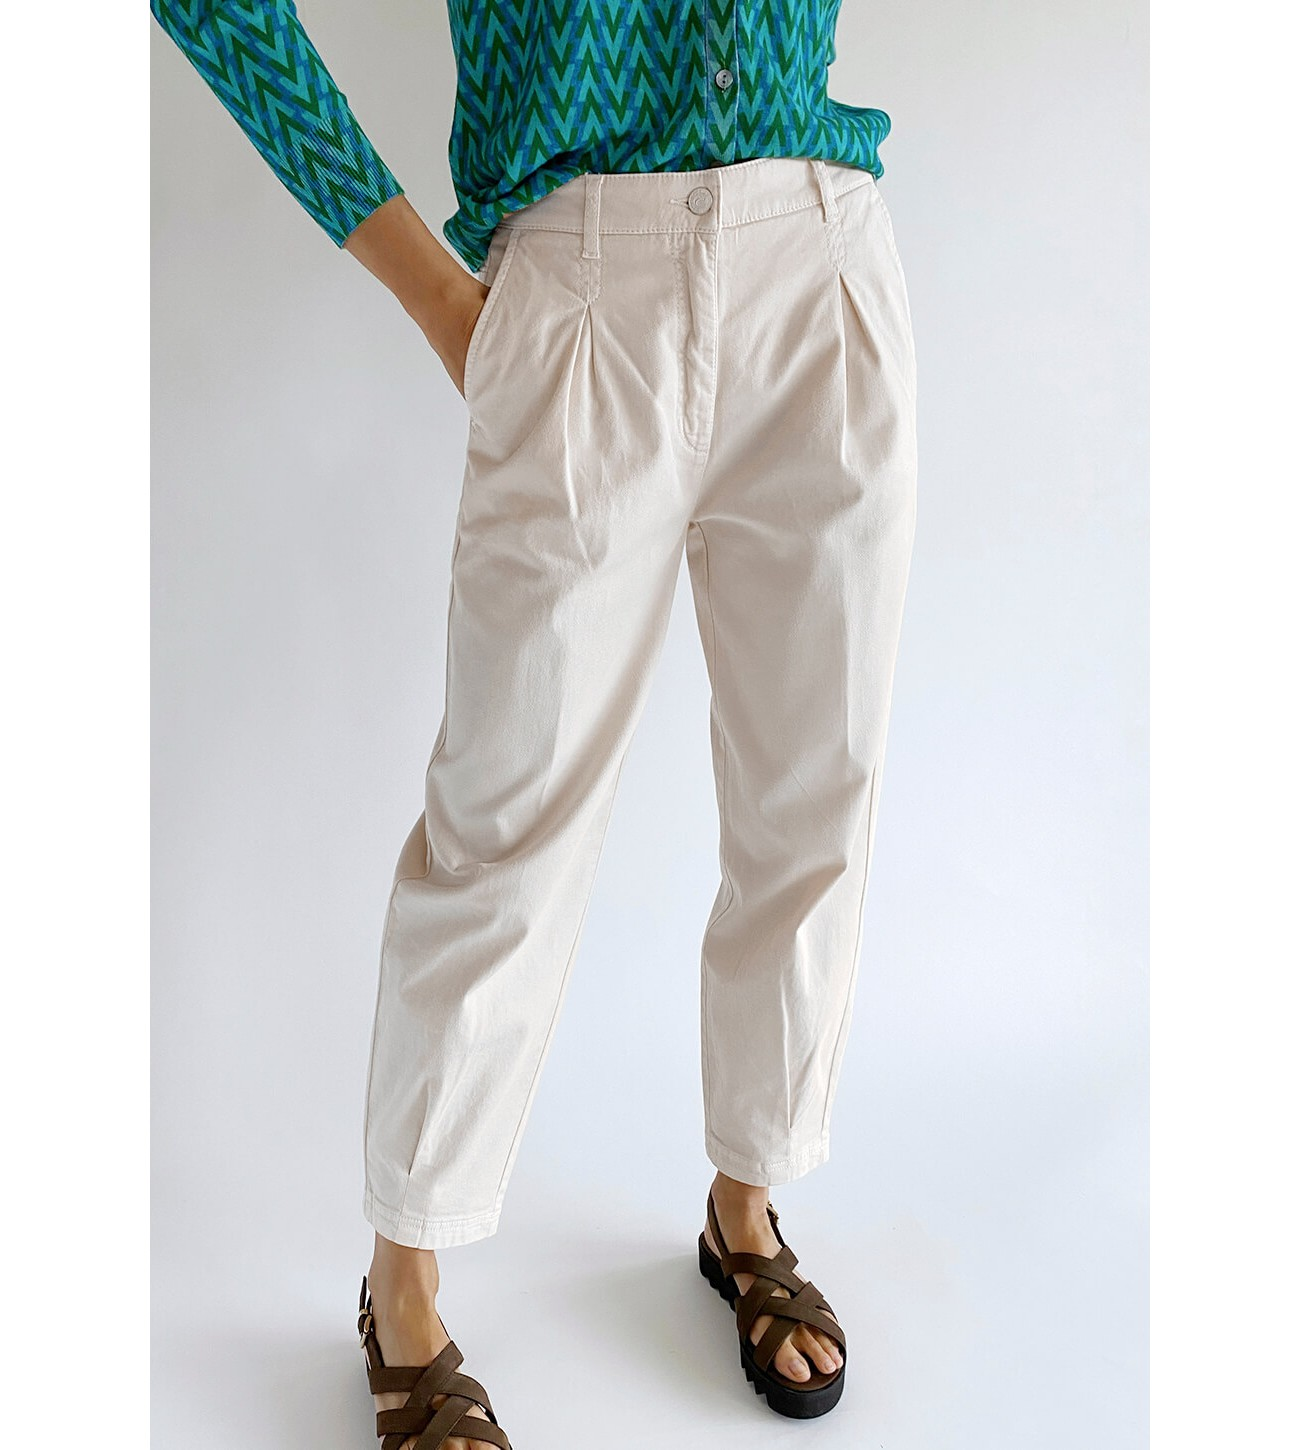 CAMBIO_BOMBACHO_TROUSERS_WITH_PLEAT_AT_WAIST_AND_AT_CUFFS_MARIONA_FASHION_CLOTHING_WOMAN_SHOP_ONLINE_0284/01